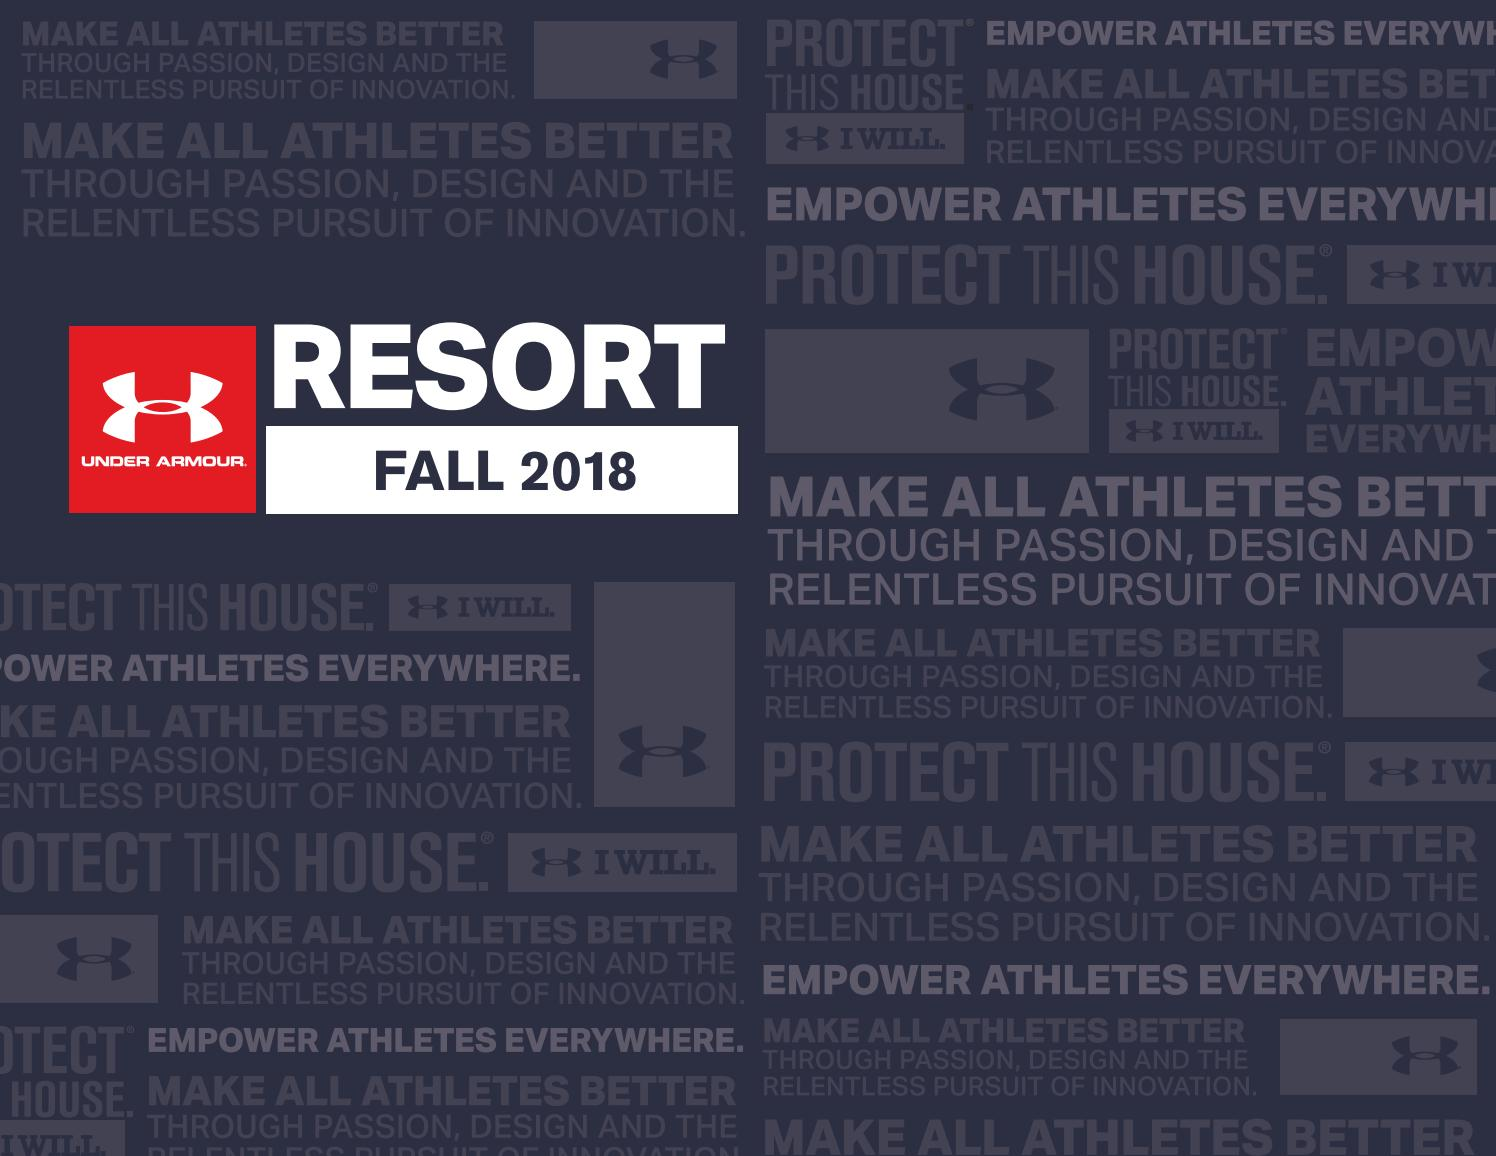 844a789de2ee41 SBS 2018 UNDER ARMOUR RESORT CORPORATE COLLECTION by Synergy Branded ...